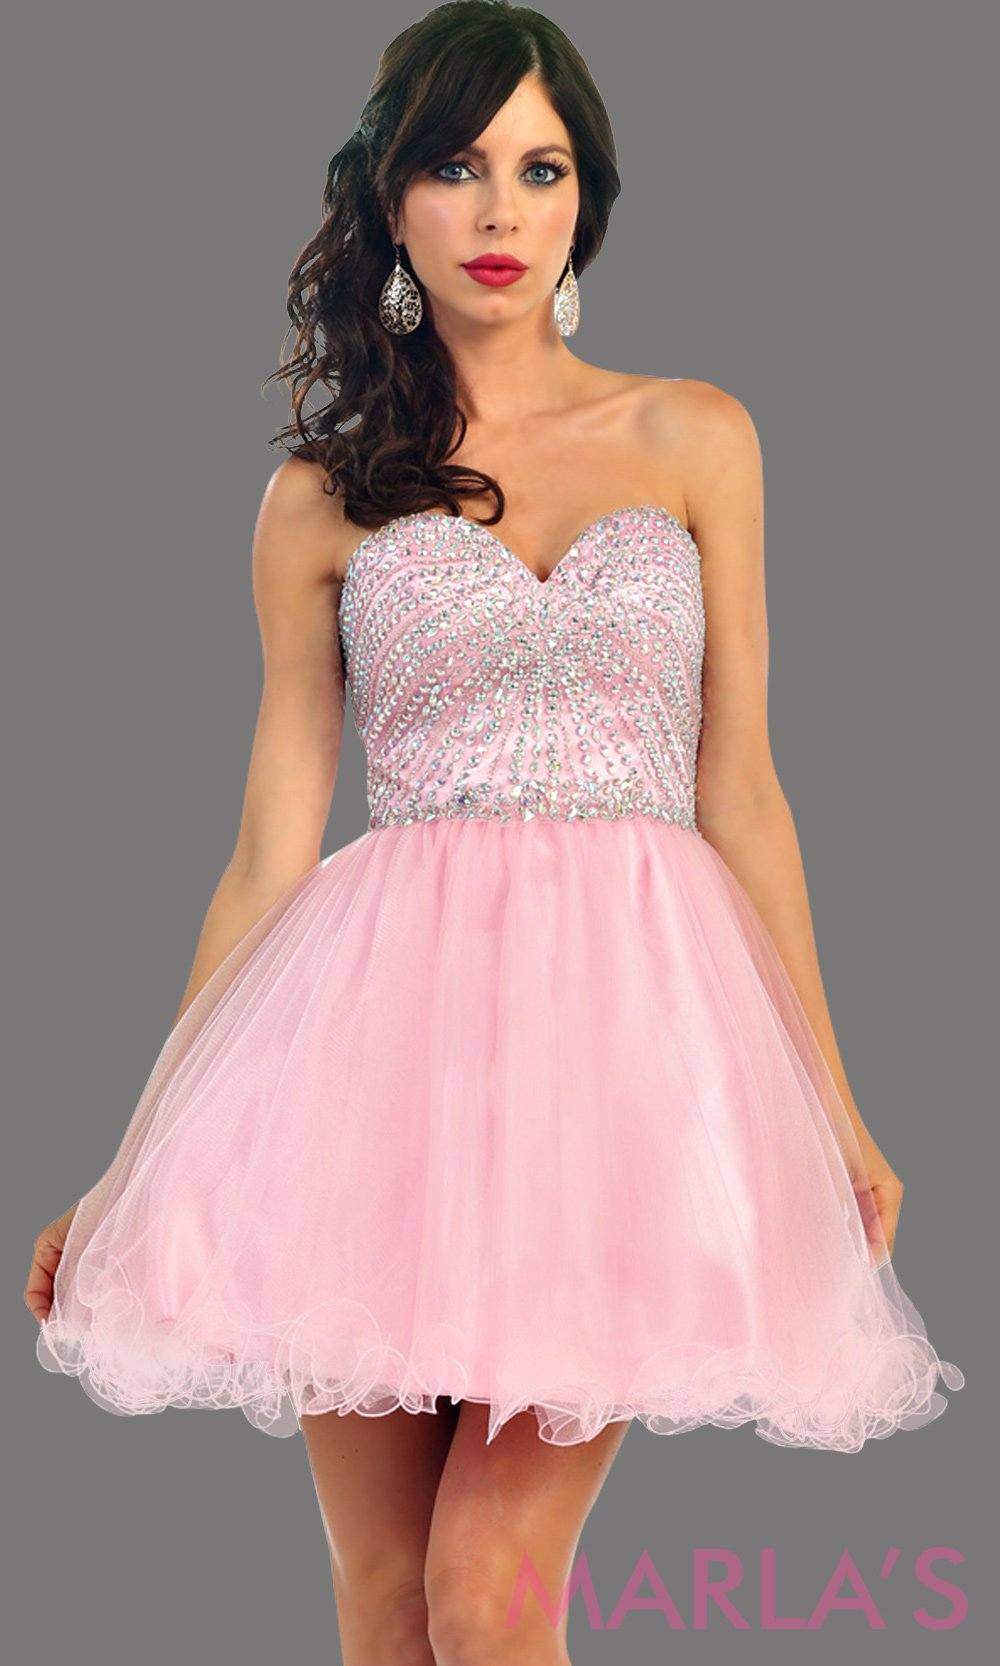 Short puffy pink strapless dress with a beaded bodice. It has a corset bodice with tone on tone beading. This is perfect for grade 8 graduation, homecoming, and blush damas. Available in plus sizes